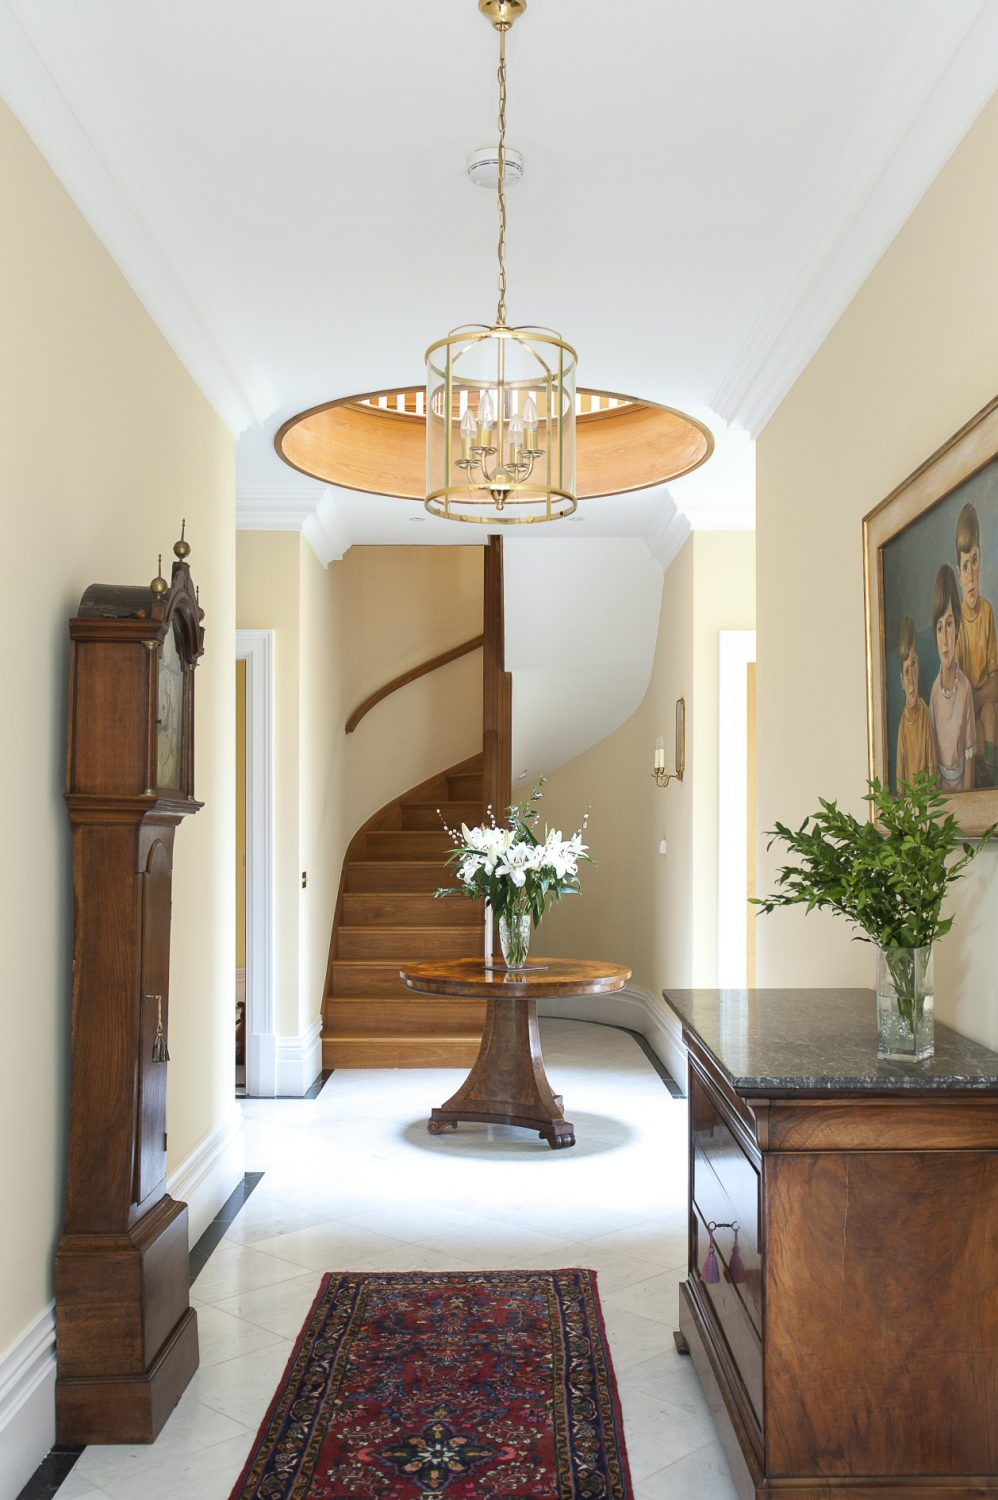 At the heart of this modern rectory-style home is a dramatic entrance hall, flooded with light and filled with furniture that befits the Georgian era